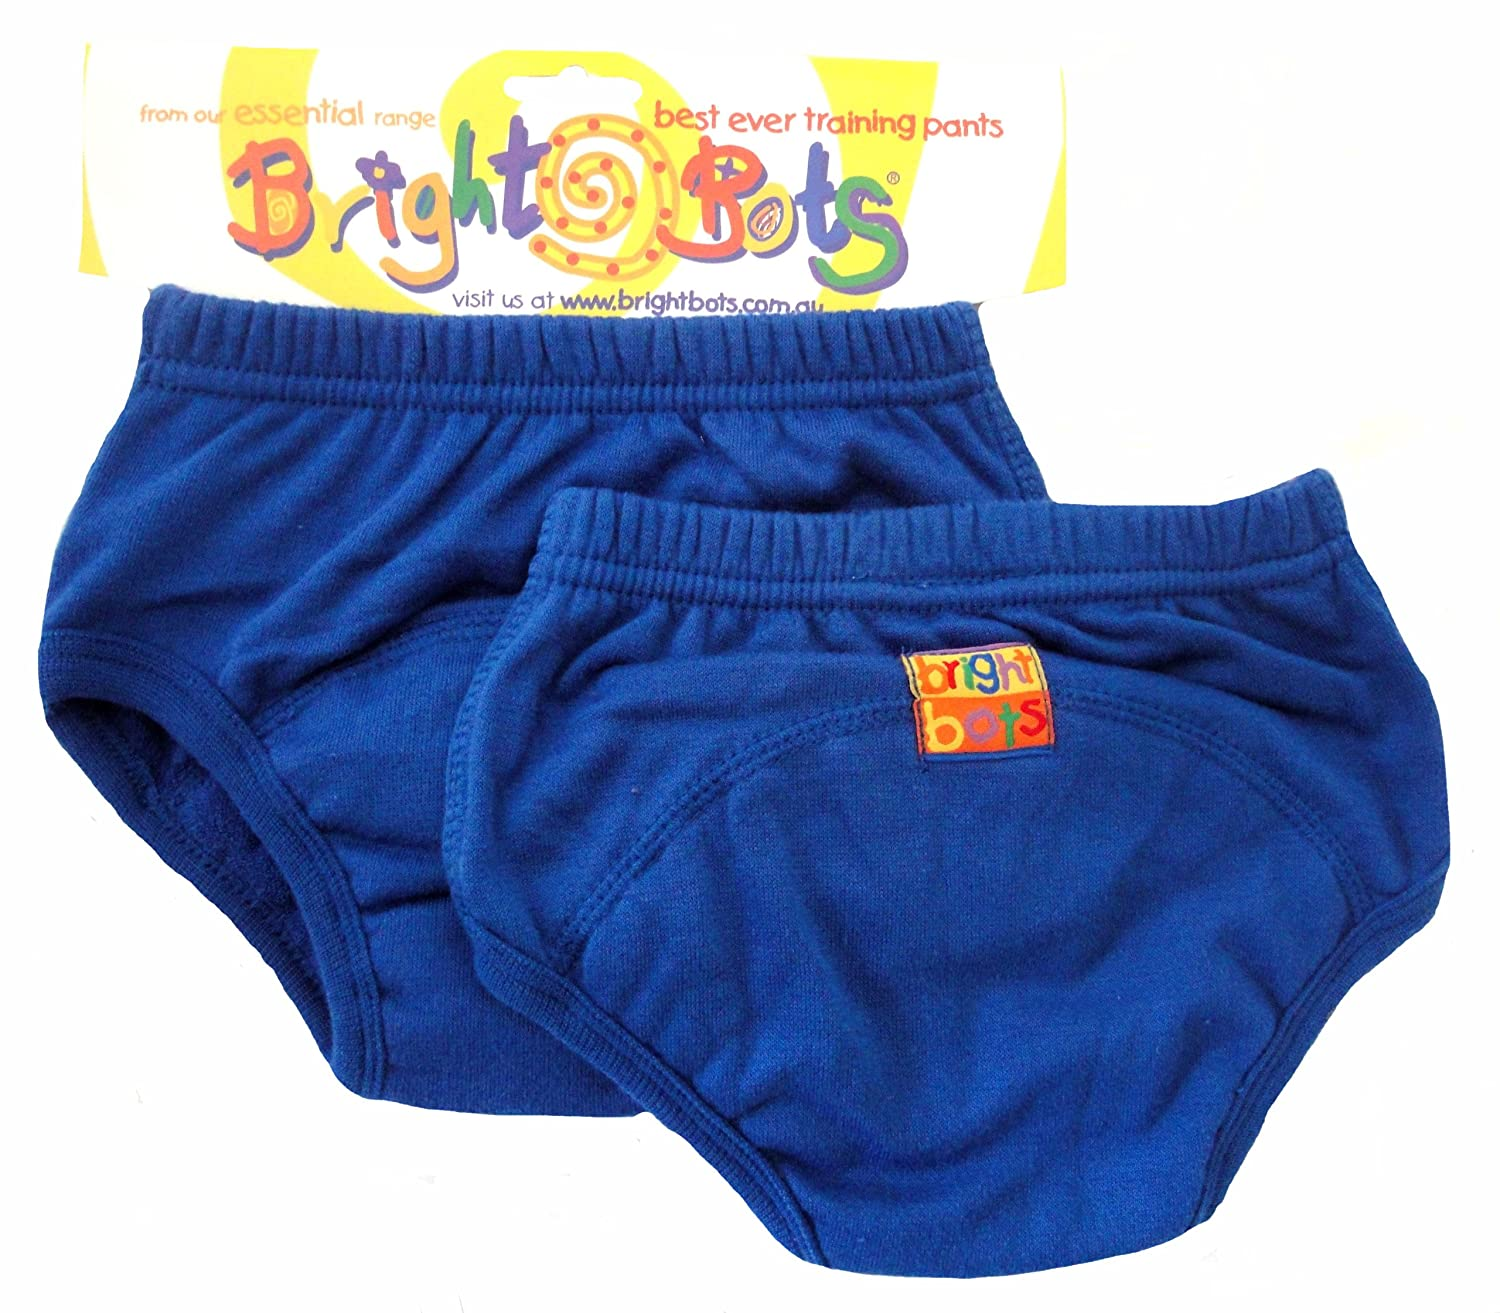 Bright Bots Potty Training Pants (Twin Pack, Blue, Small, 12 -18 months) 2AAETRA1-2BS